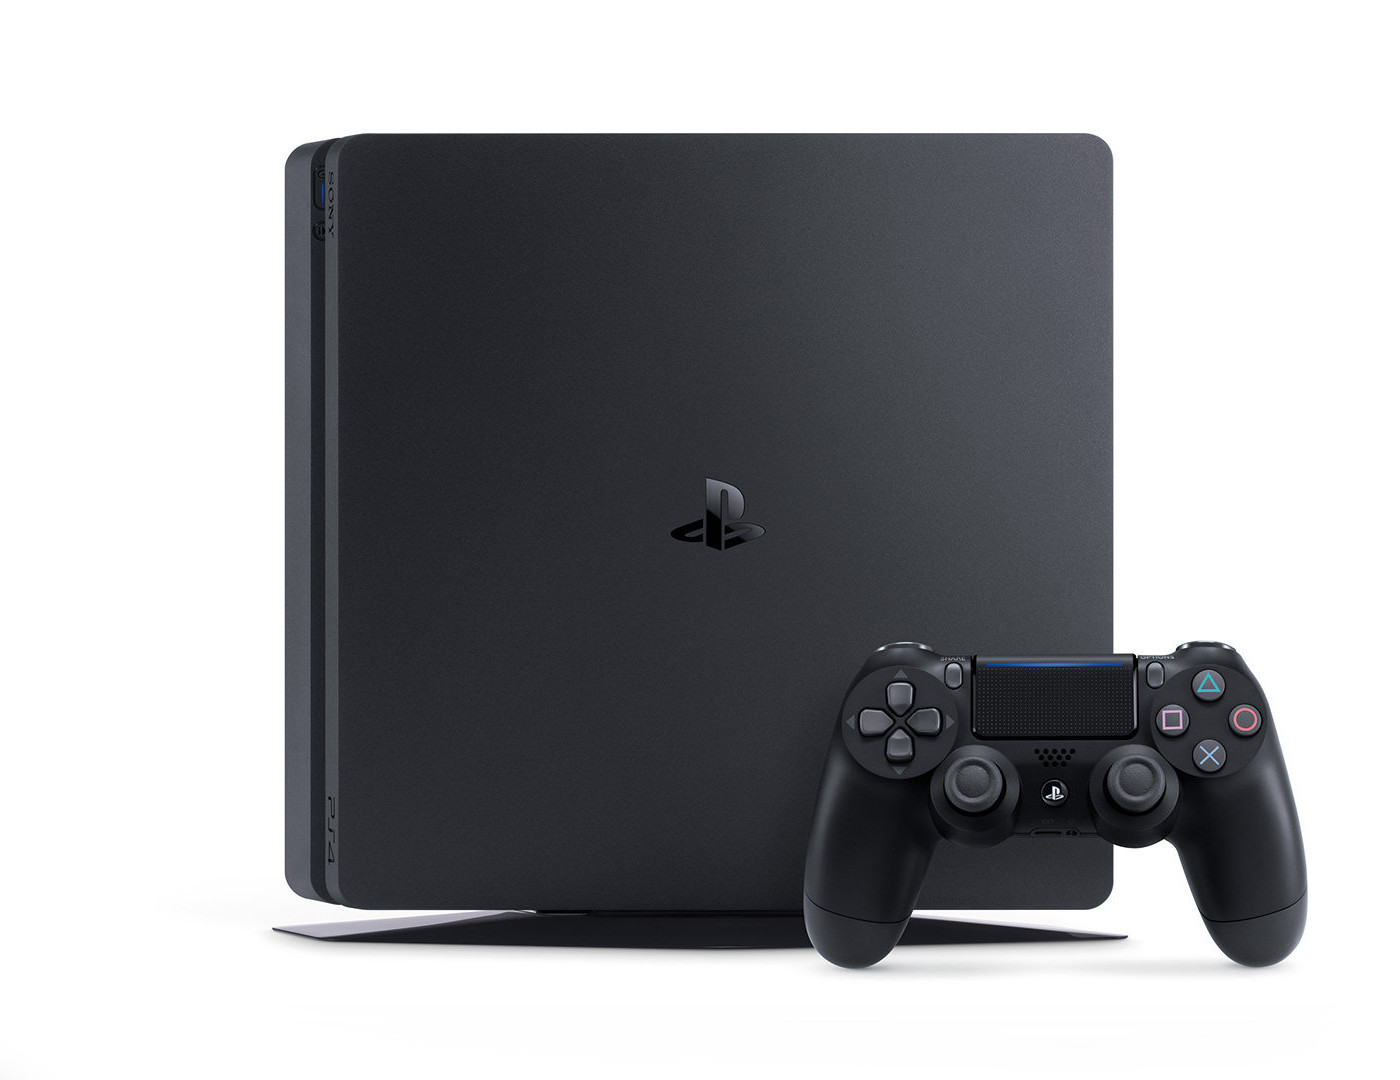 sony playstation 4 slim 500 go noir achat pas cher. Black Bedroom Furniture Sets. Home Design Ideas